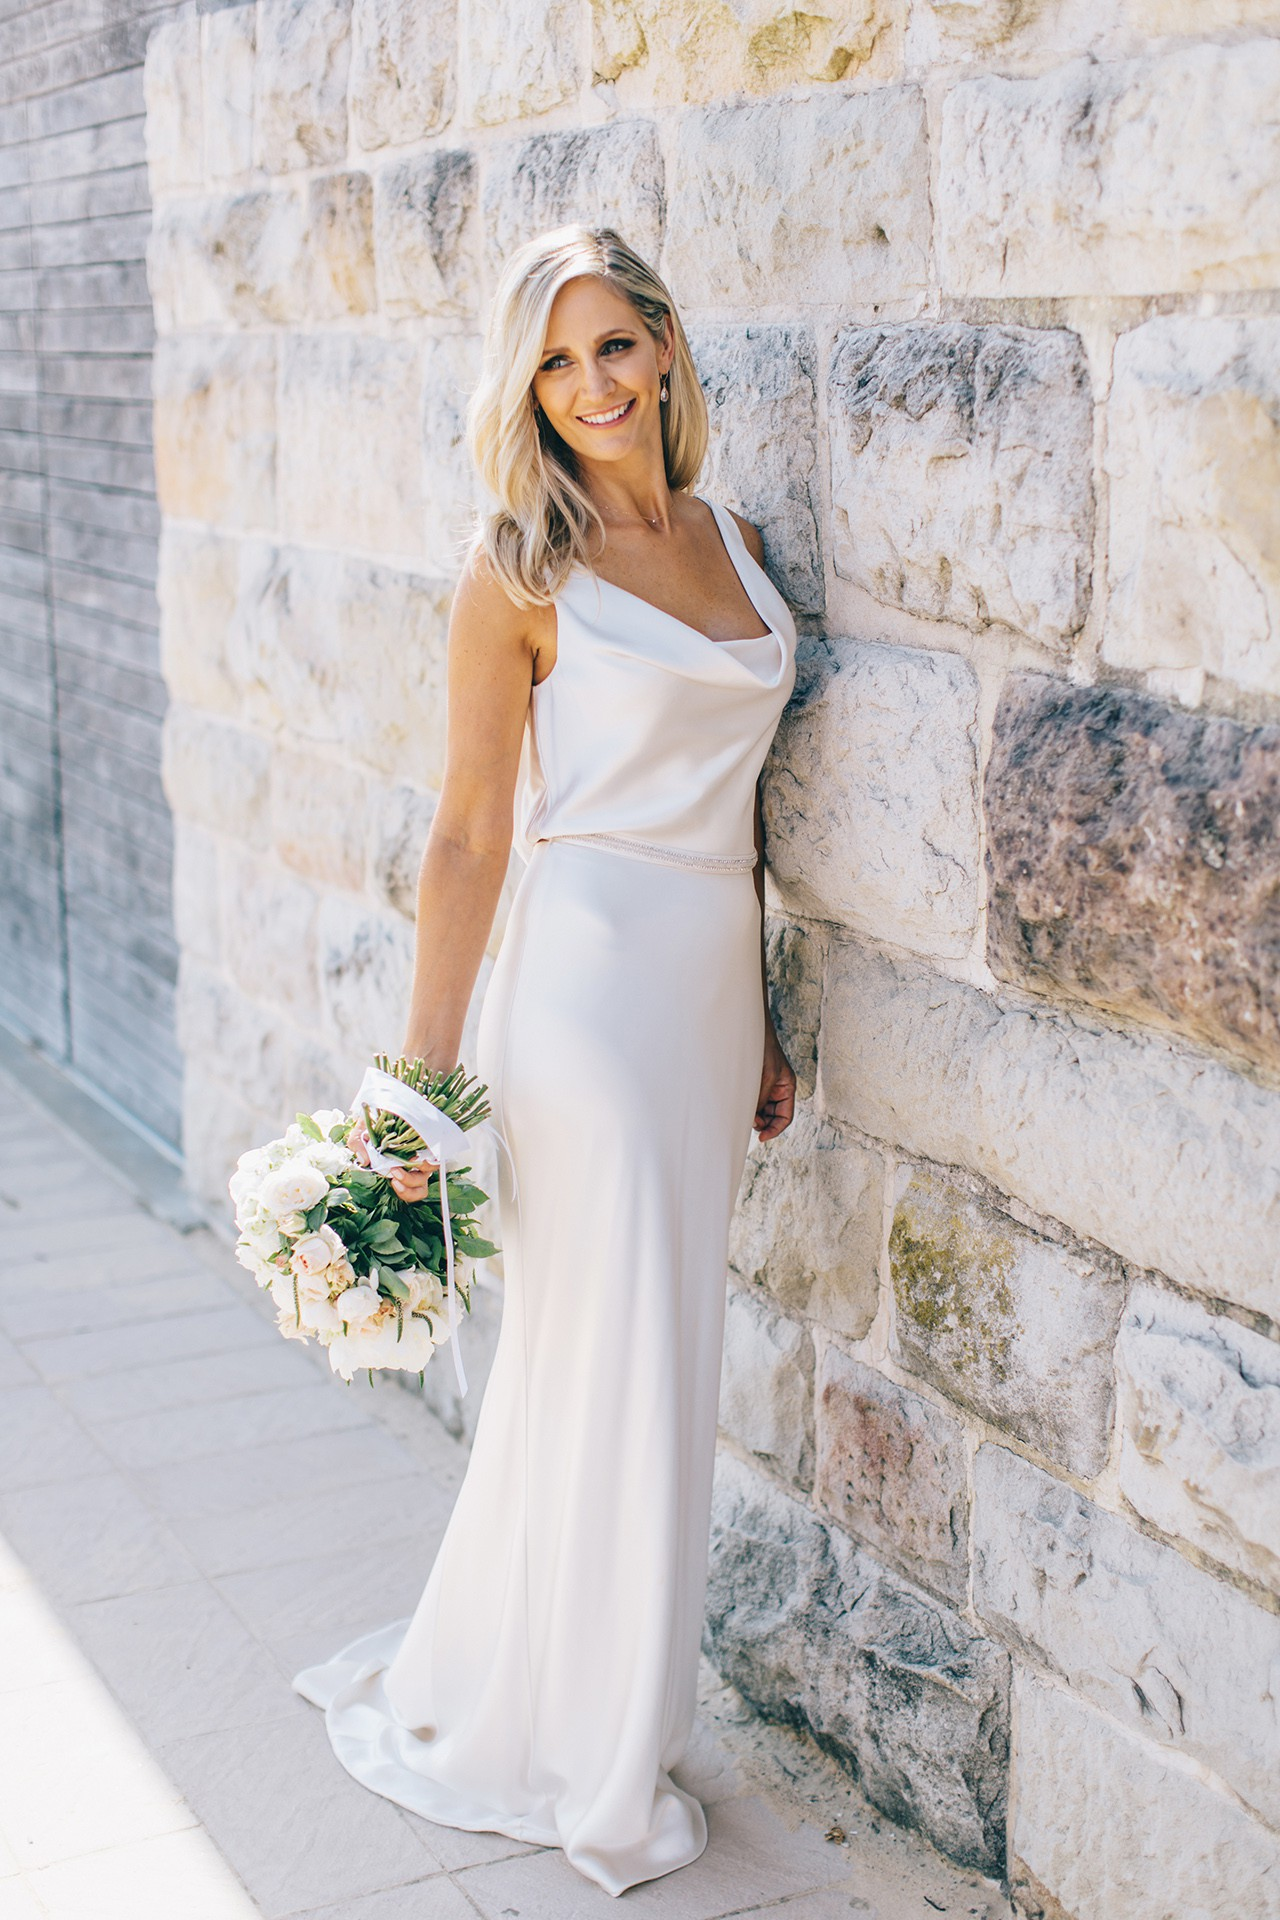 Low Back Wedding Dresses Sydney : Helen english wedding dress on sale off